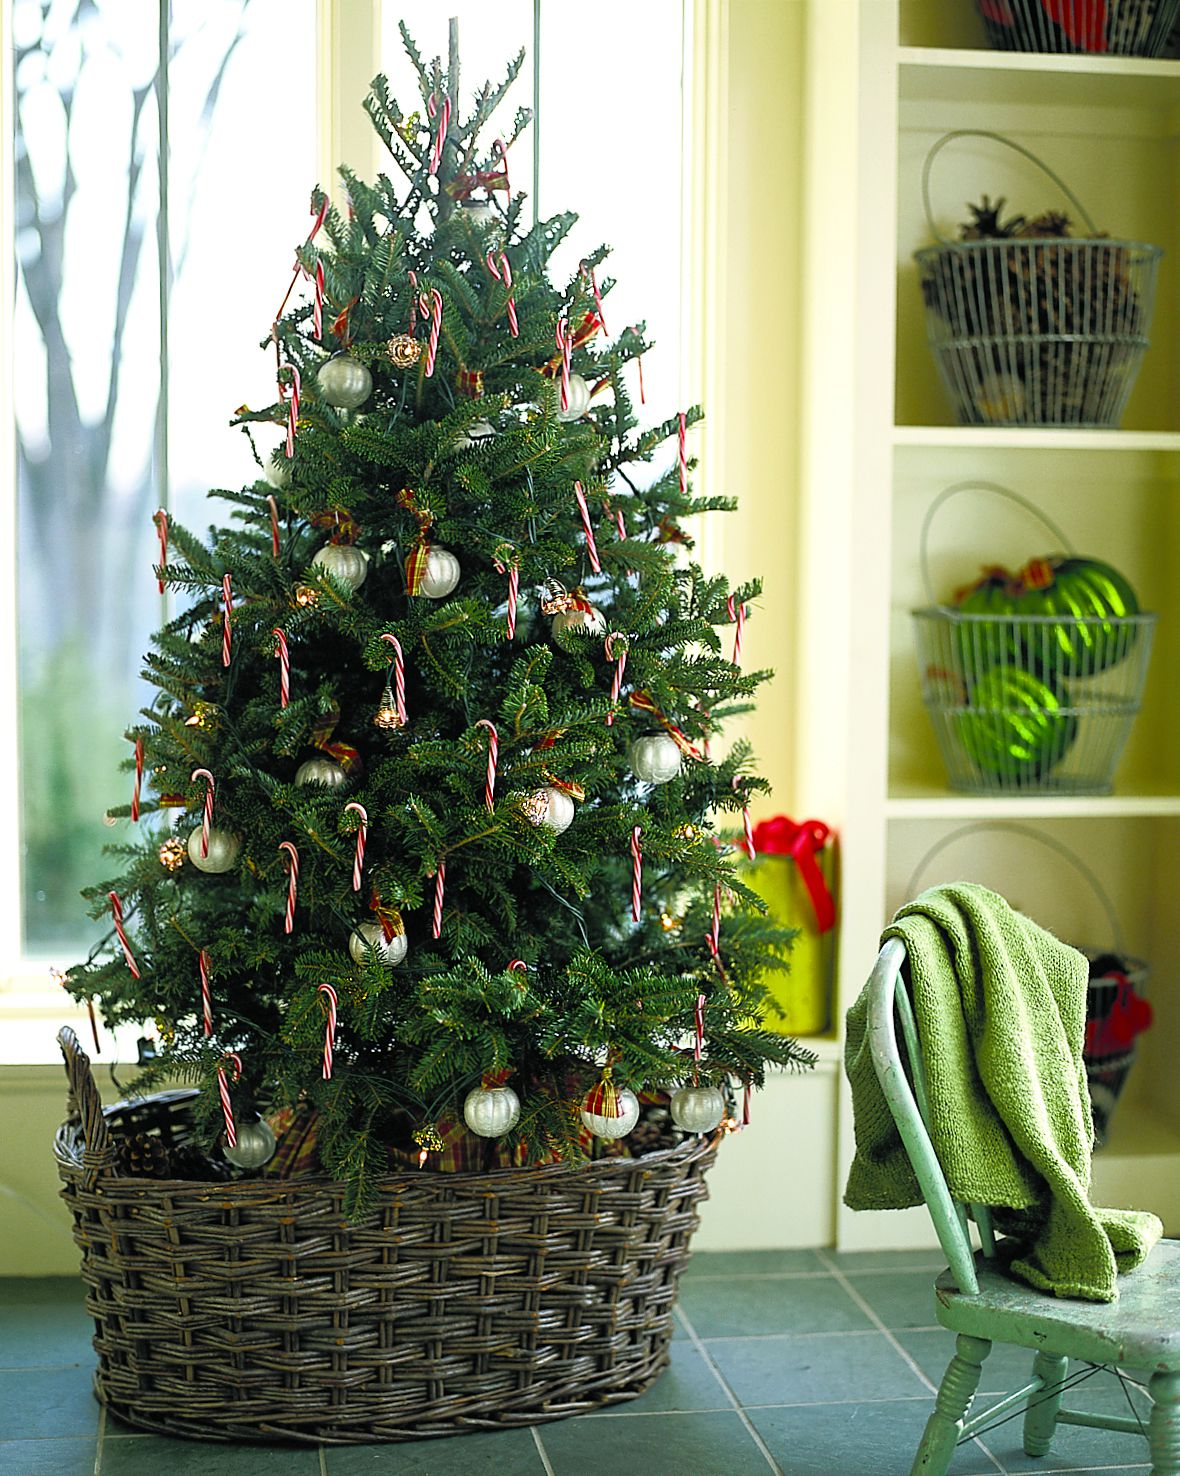 A decorated live Christmas tree indoors placed in a decorative basket.